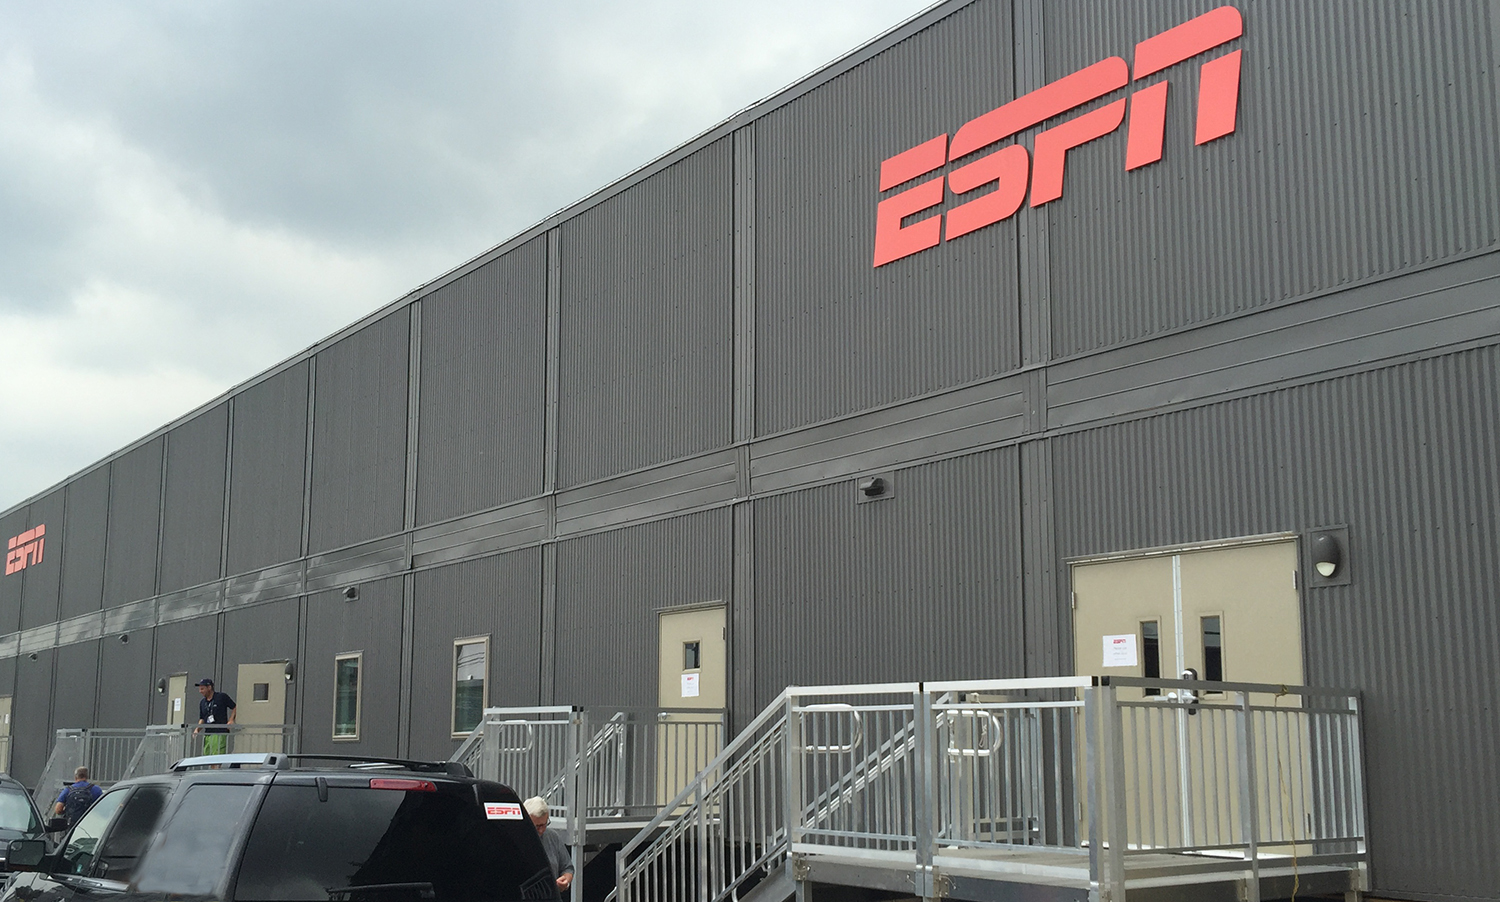 ESPN's two-story broadcast center at the National Tennis Center